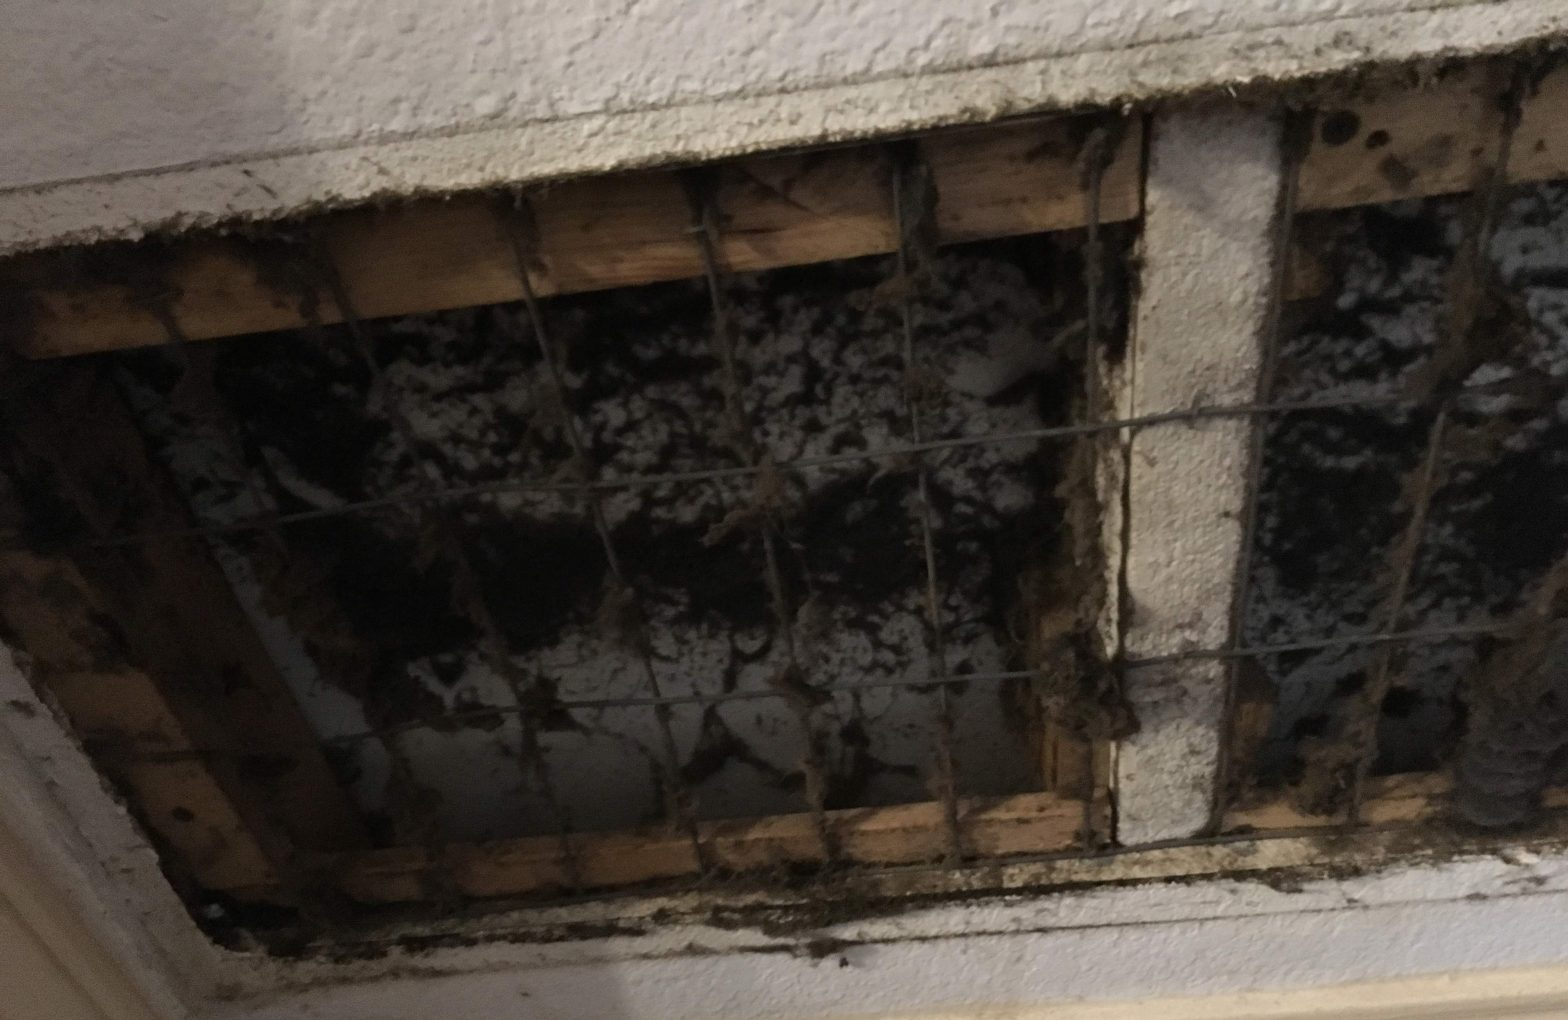 Take off the vent and look!